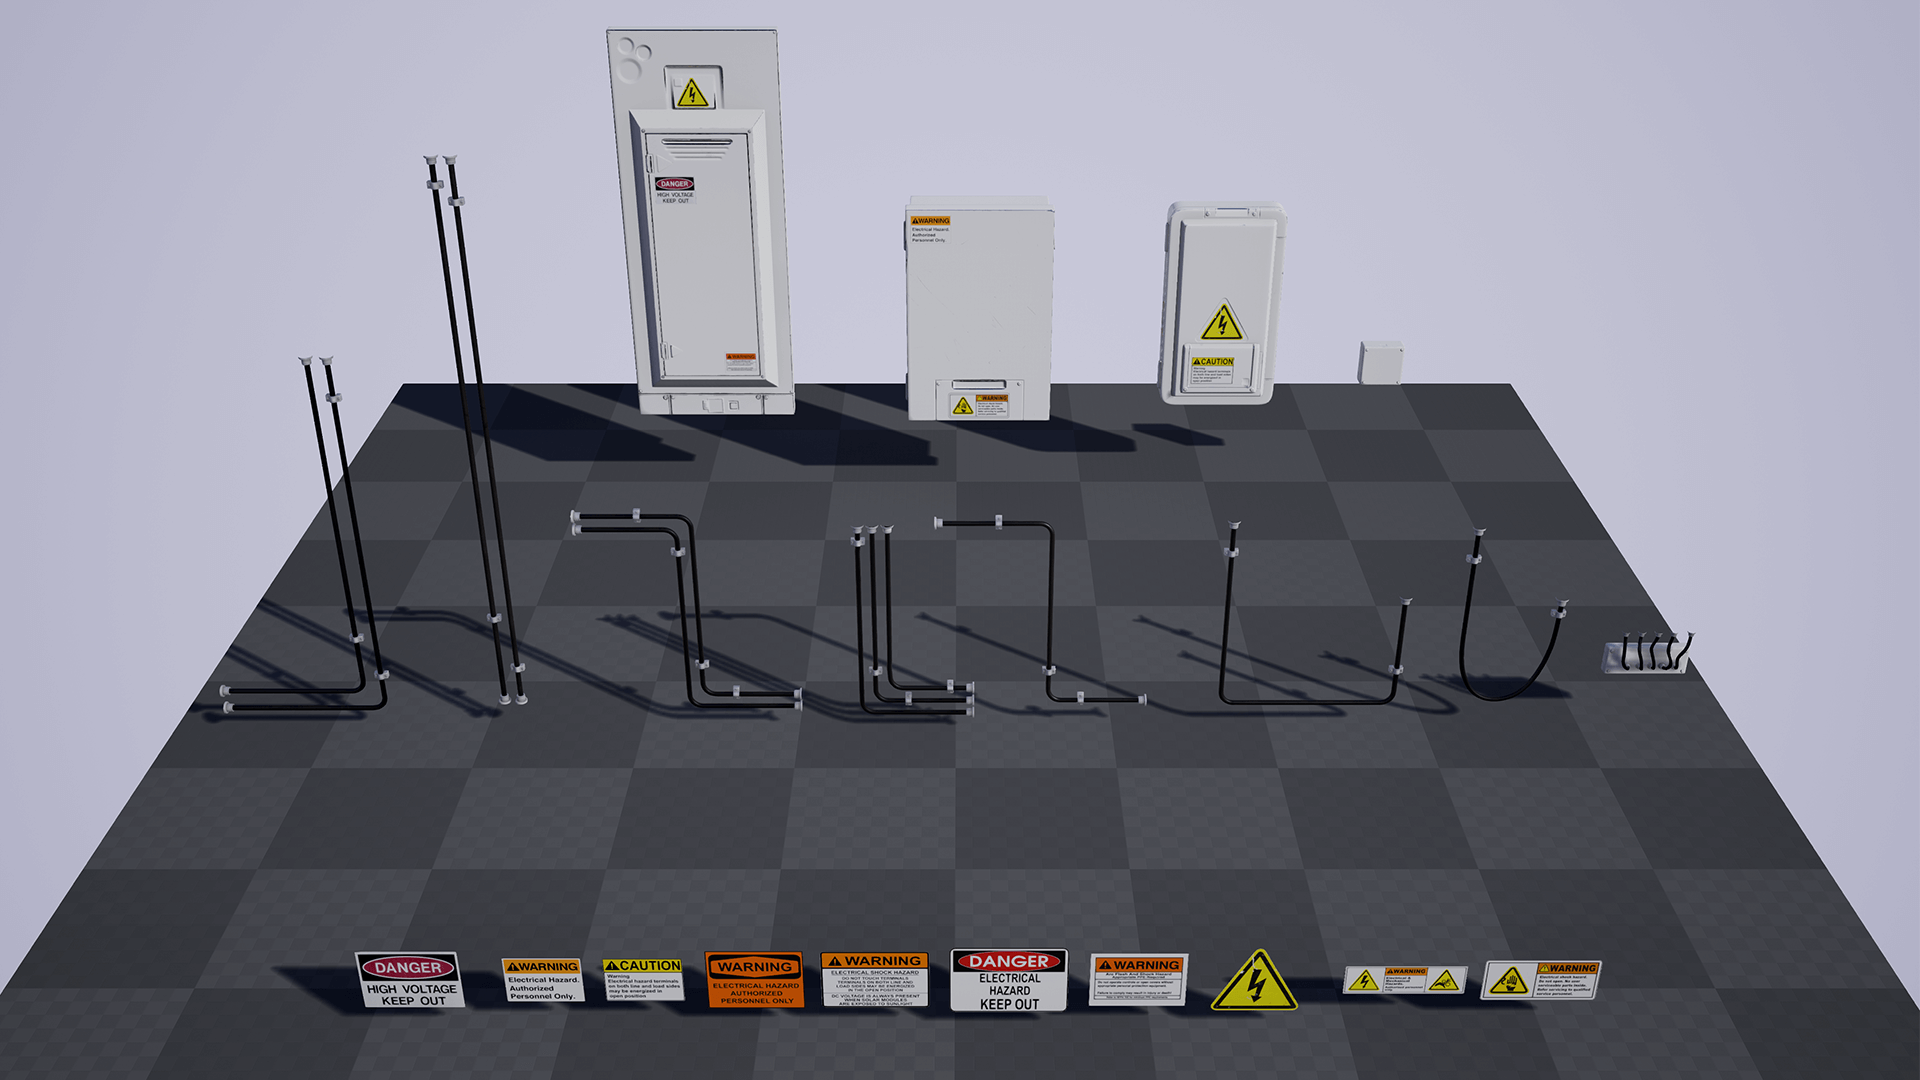 Fuse Box Studios Trusted Wiring Diagrams 1920 Electrical Boxes And Wires Pack By Matima Studio In Props Ue4 Rh Unrealengine Com